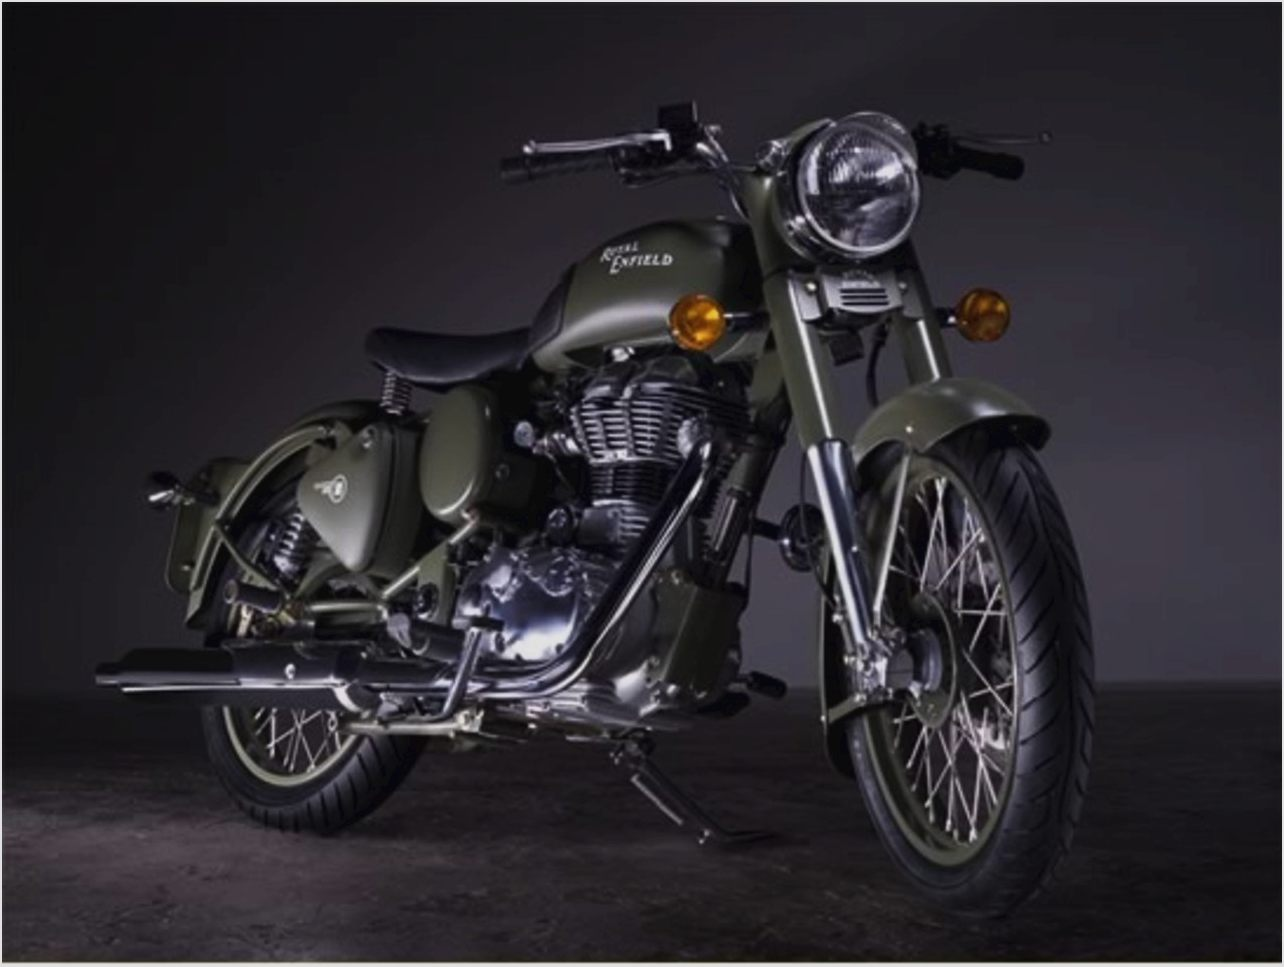 Royal Enfield Bullet 500 Army 1995 images #122813